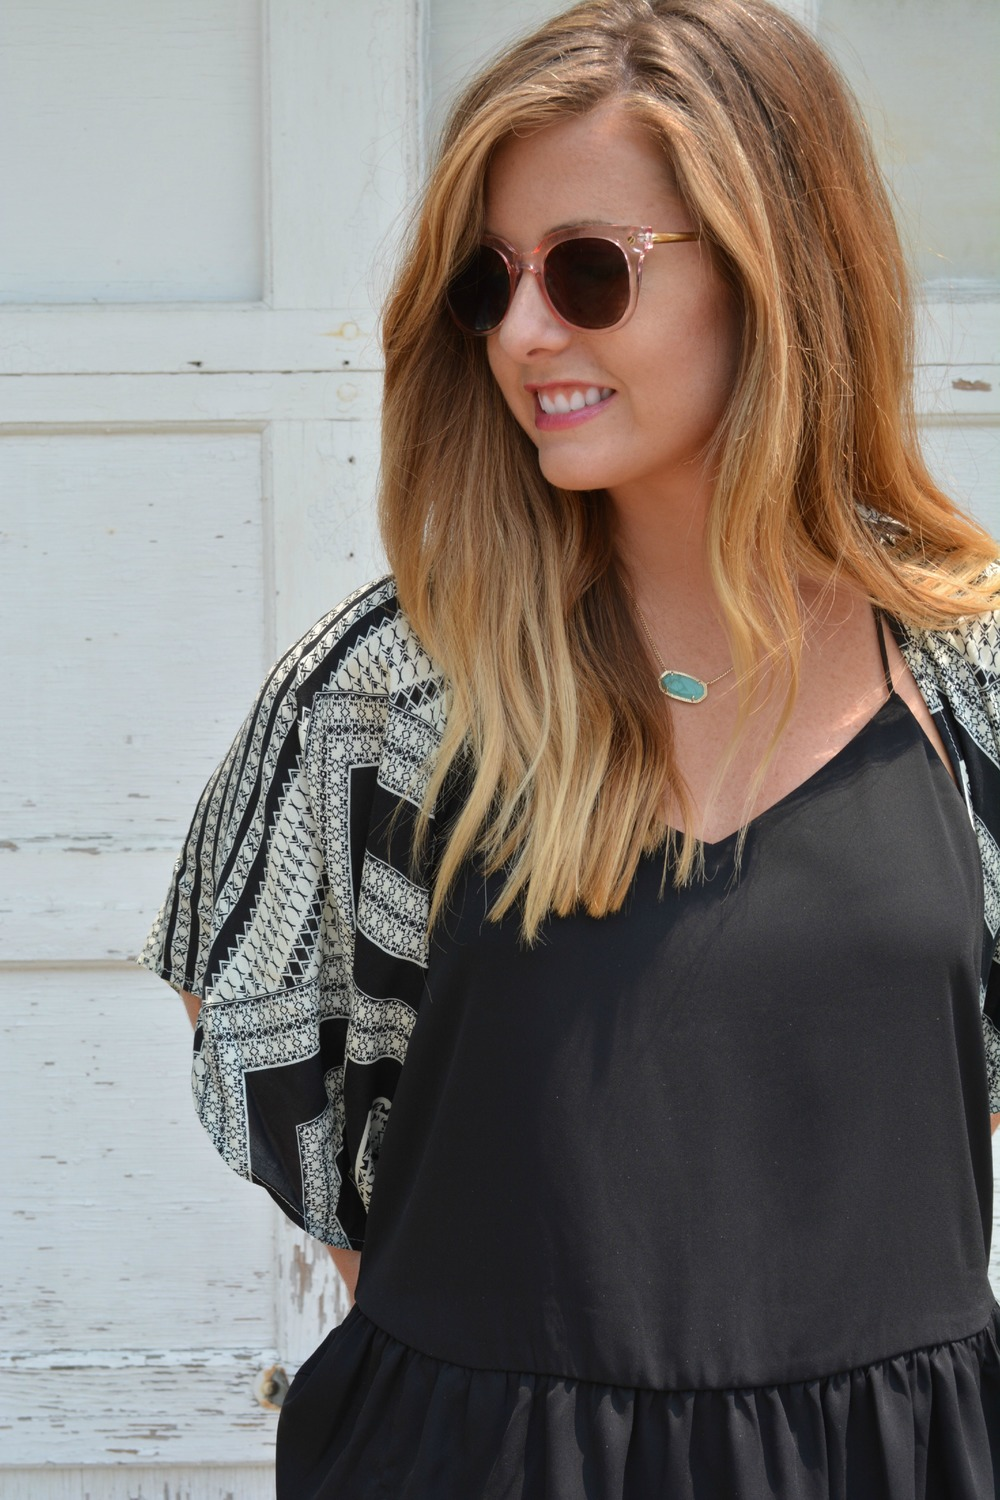 Black tank top with printed kimono and pink sunglasses on Sophisticaited.com